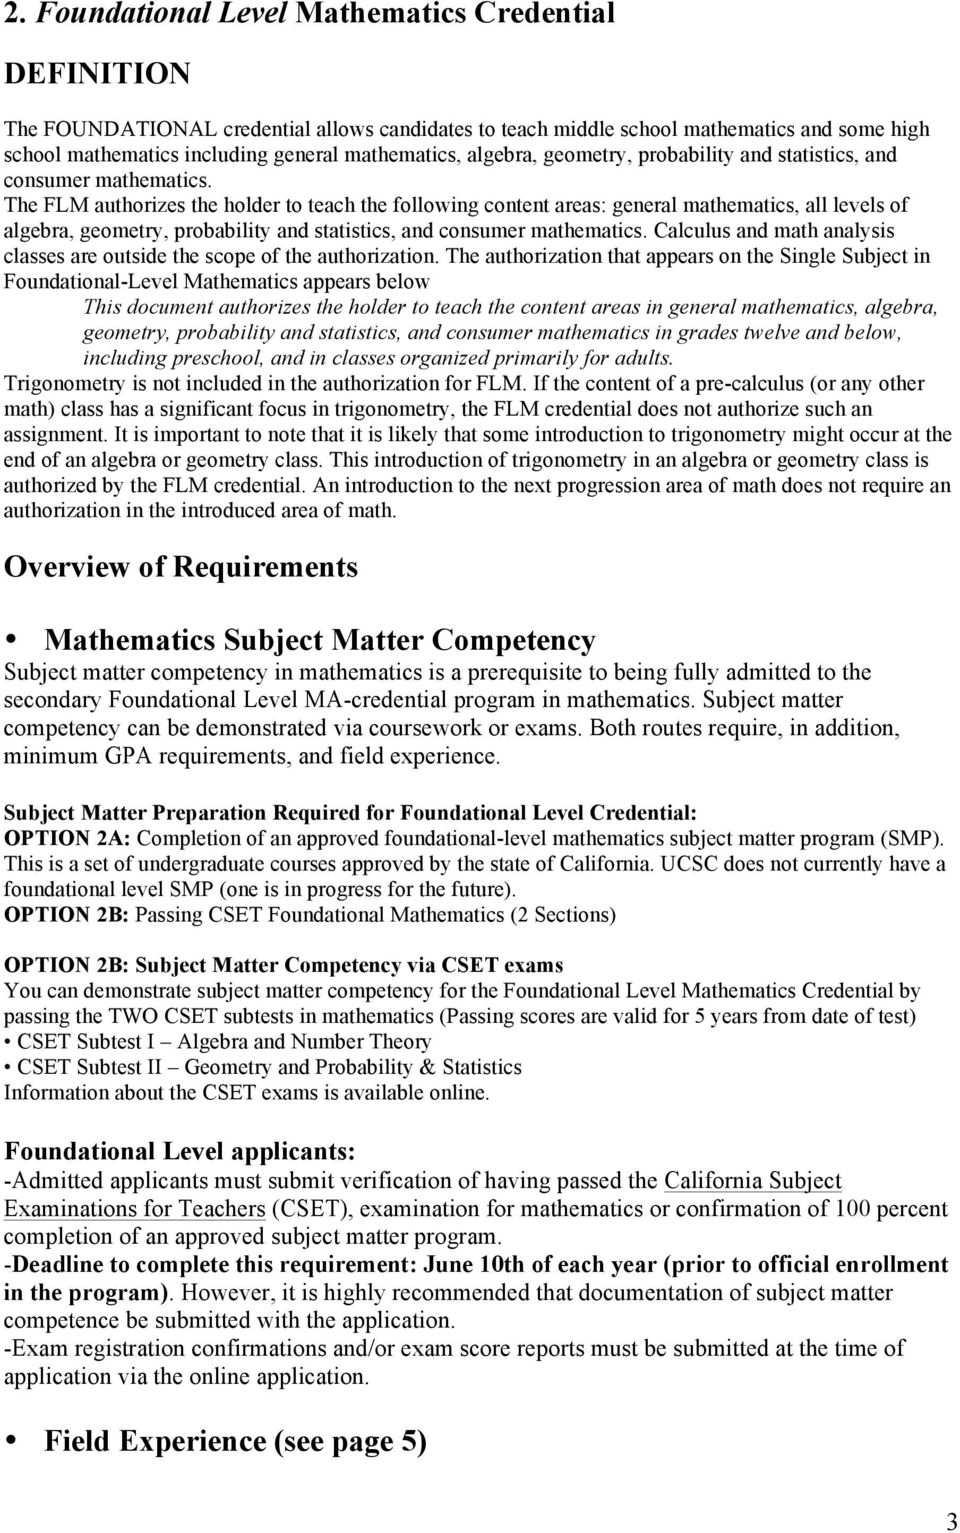 The FLM authorizes the holder to teach the following content areas: general mathematics, all levels of algebra, geometry, probability and statistics, and consumer mathematics.